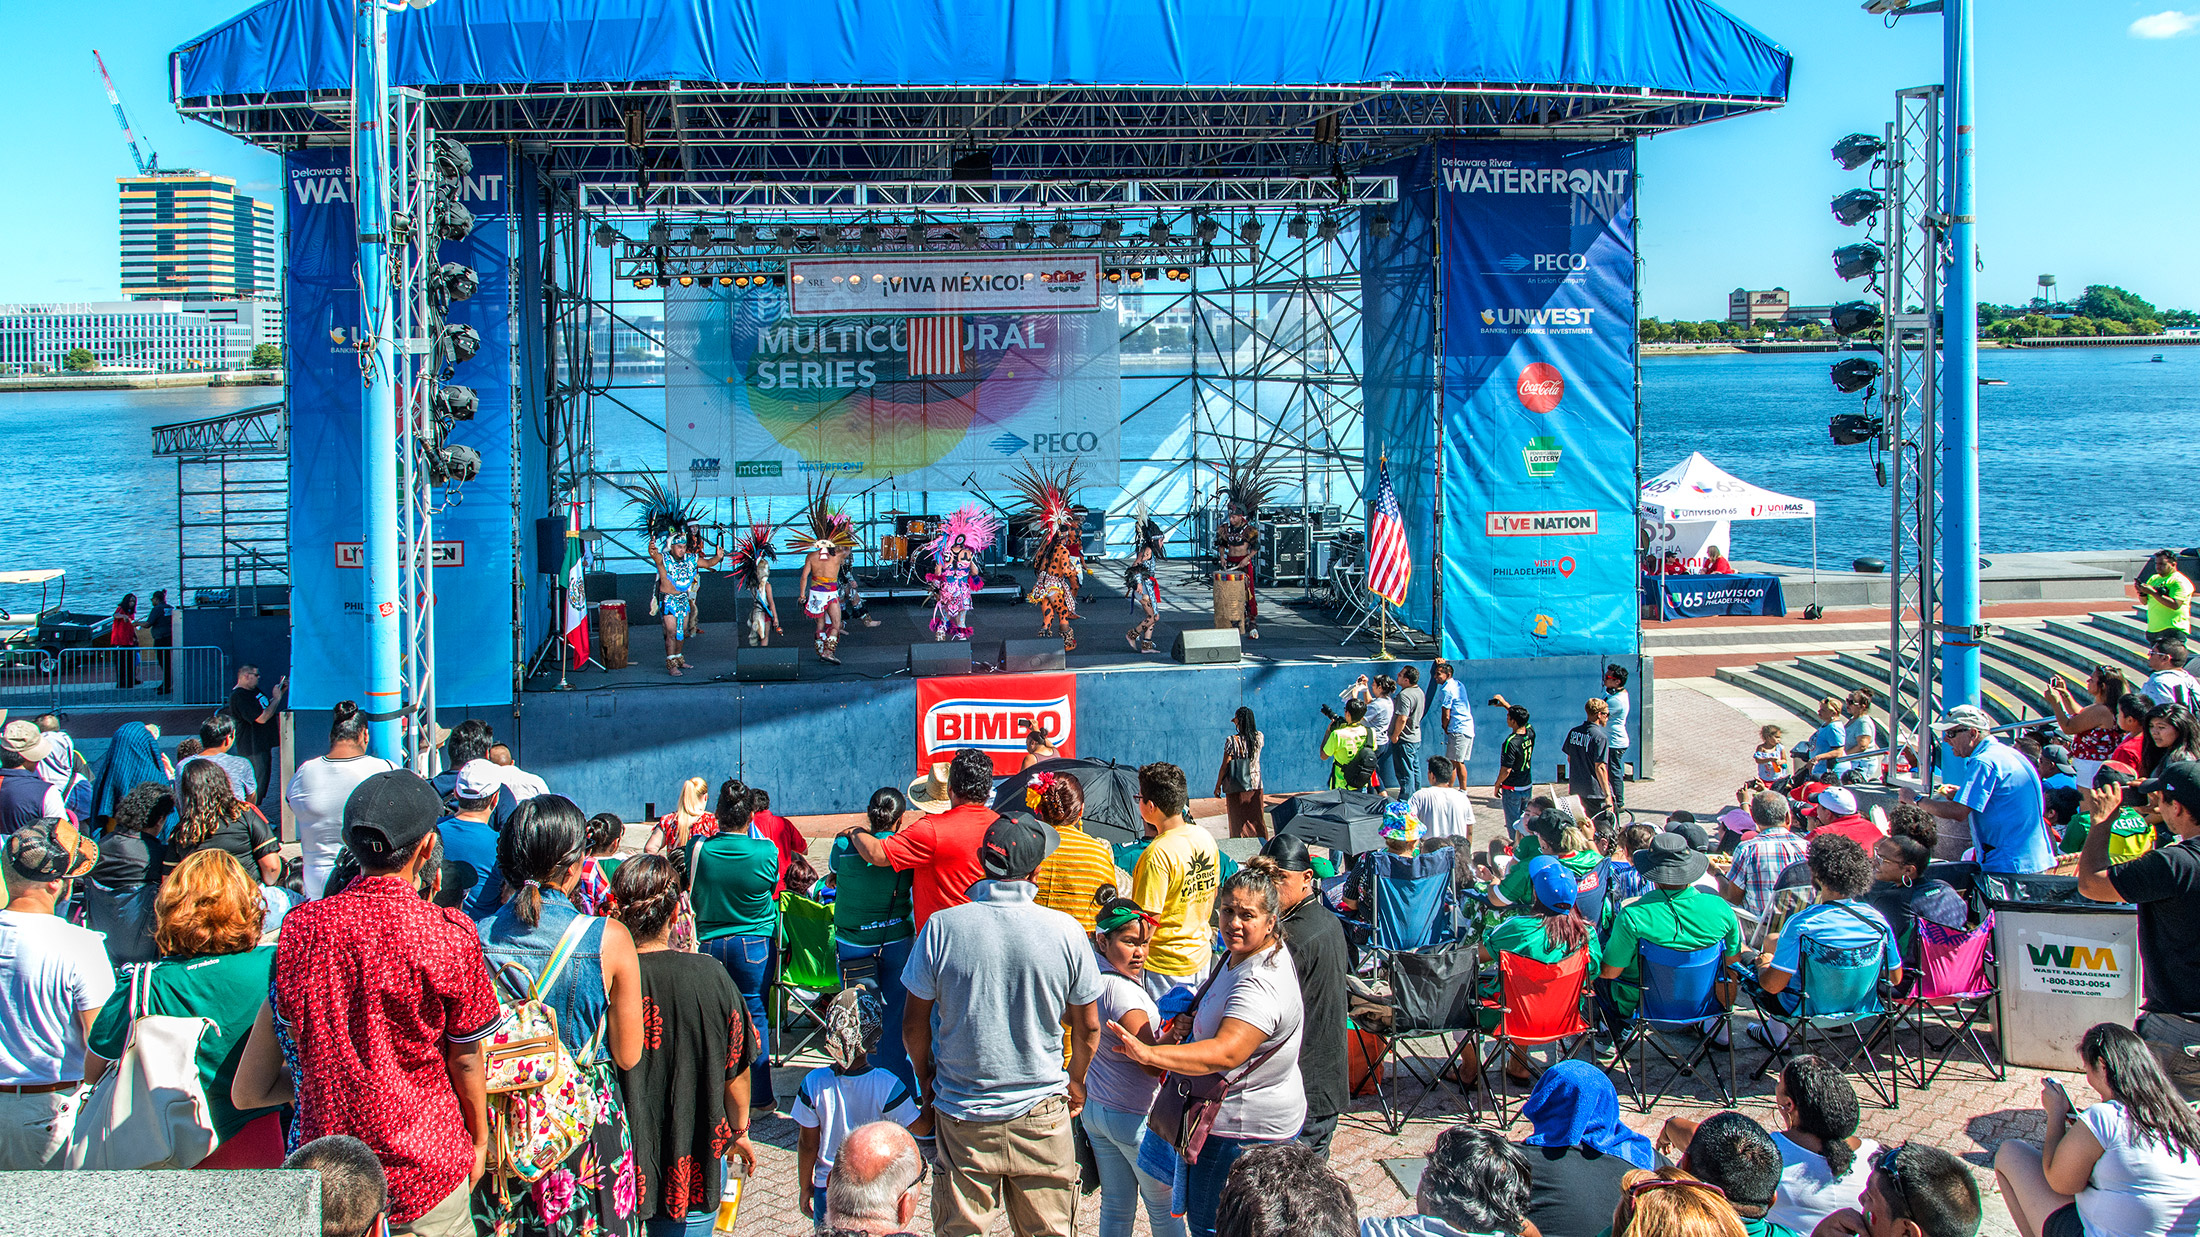 Philly Events July 2020.The Top Multicultural Festivals In Philadelphia In 2019